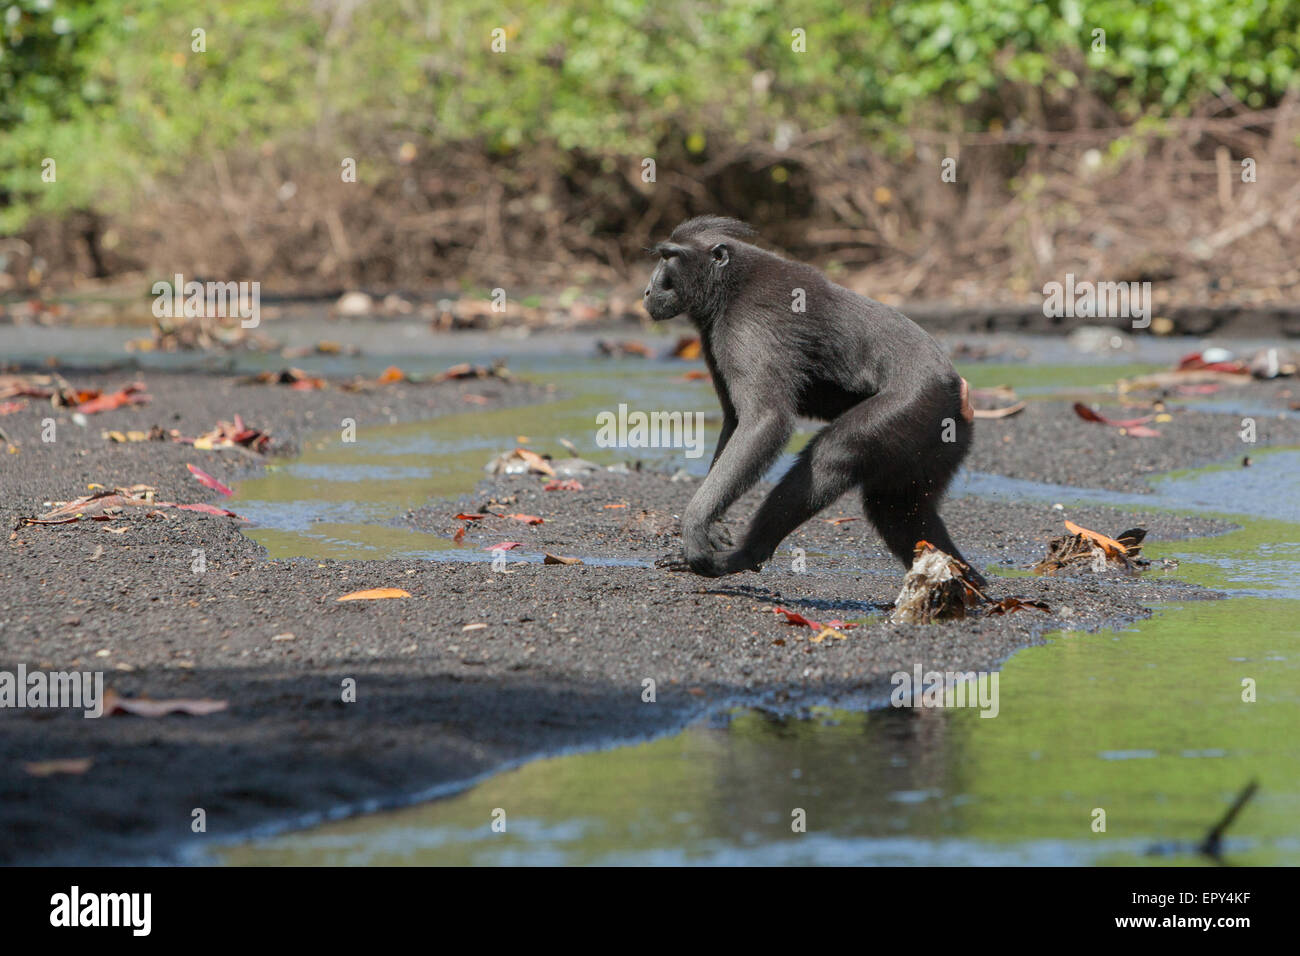 Sulawesi black-crested macaque (Macaca nigra) on bipedal behaviour. - Stock Image